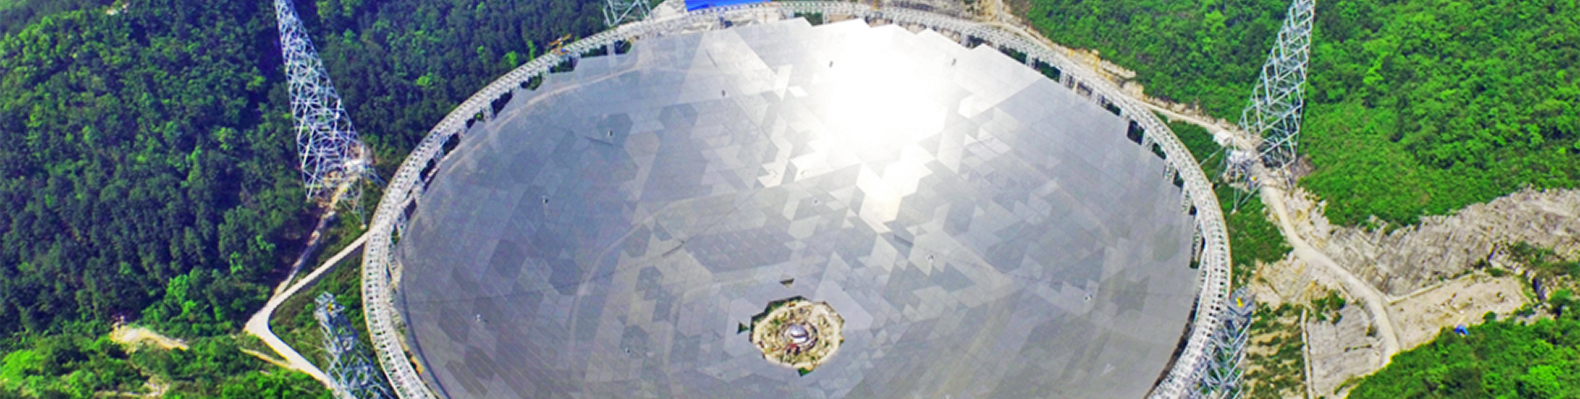 China completes world's largest radio telescope to search for alien life